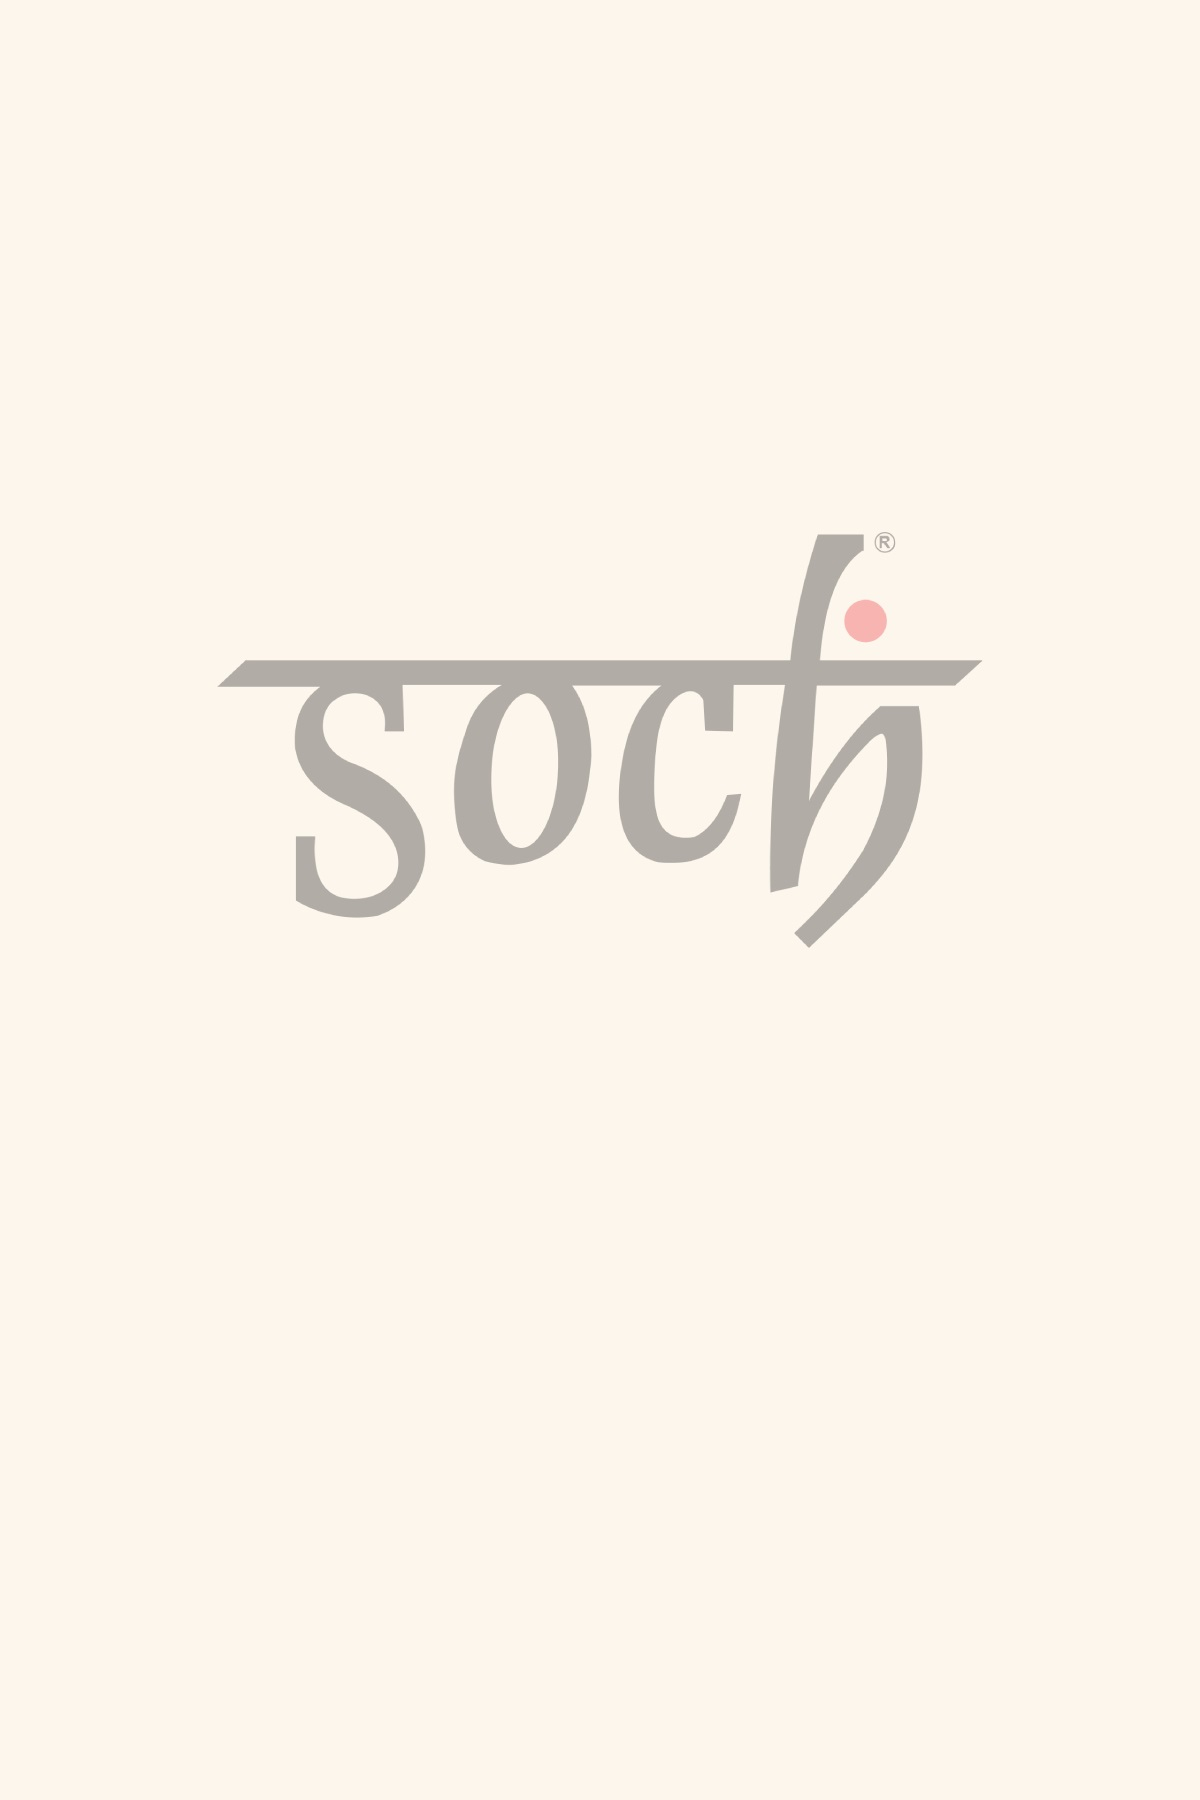 ba0801ee547ade ... Tussar Embroidered Saree - SOCH NC SR 16535. 30% off